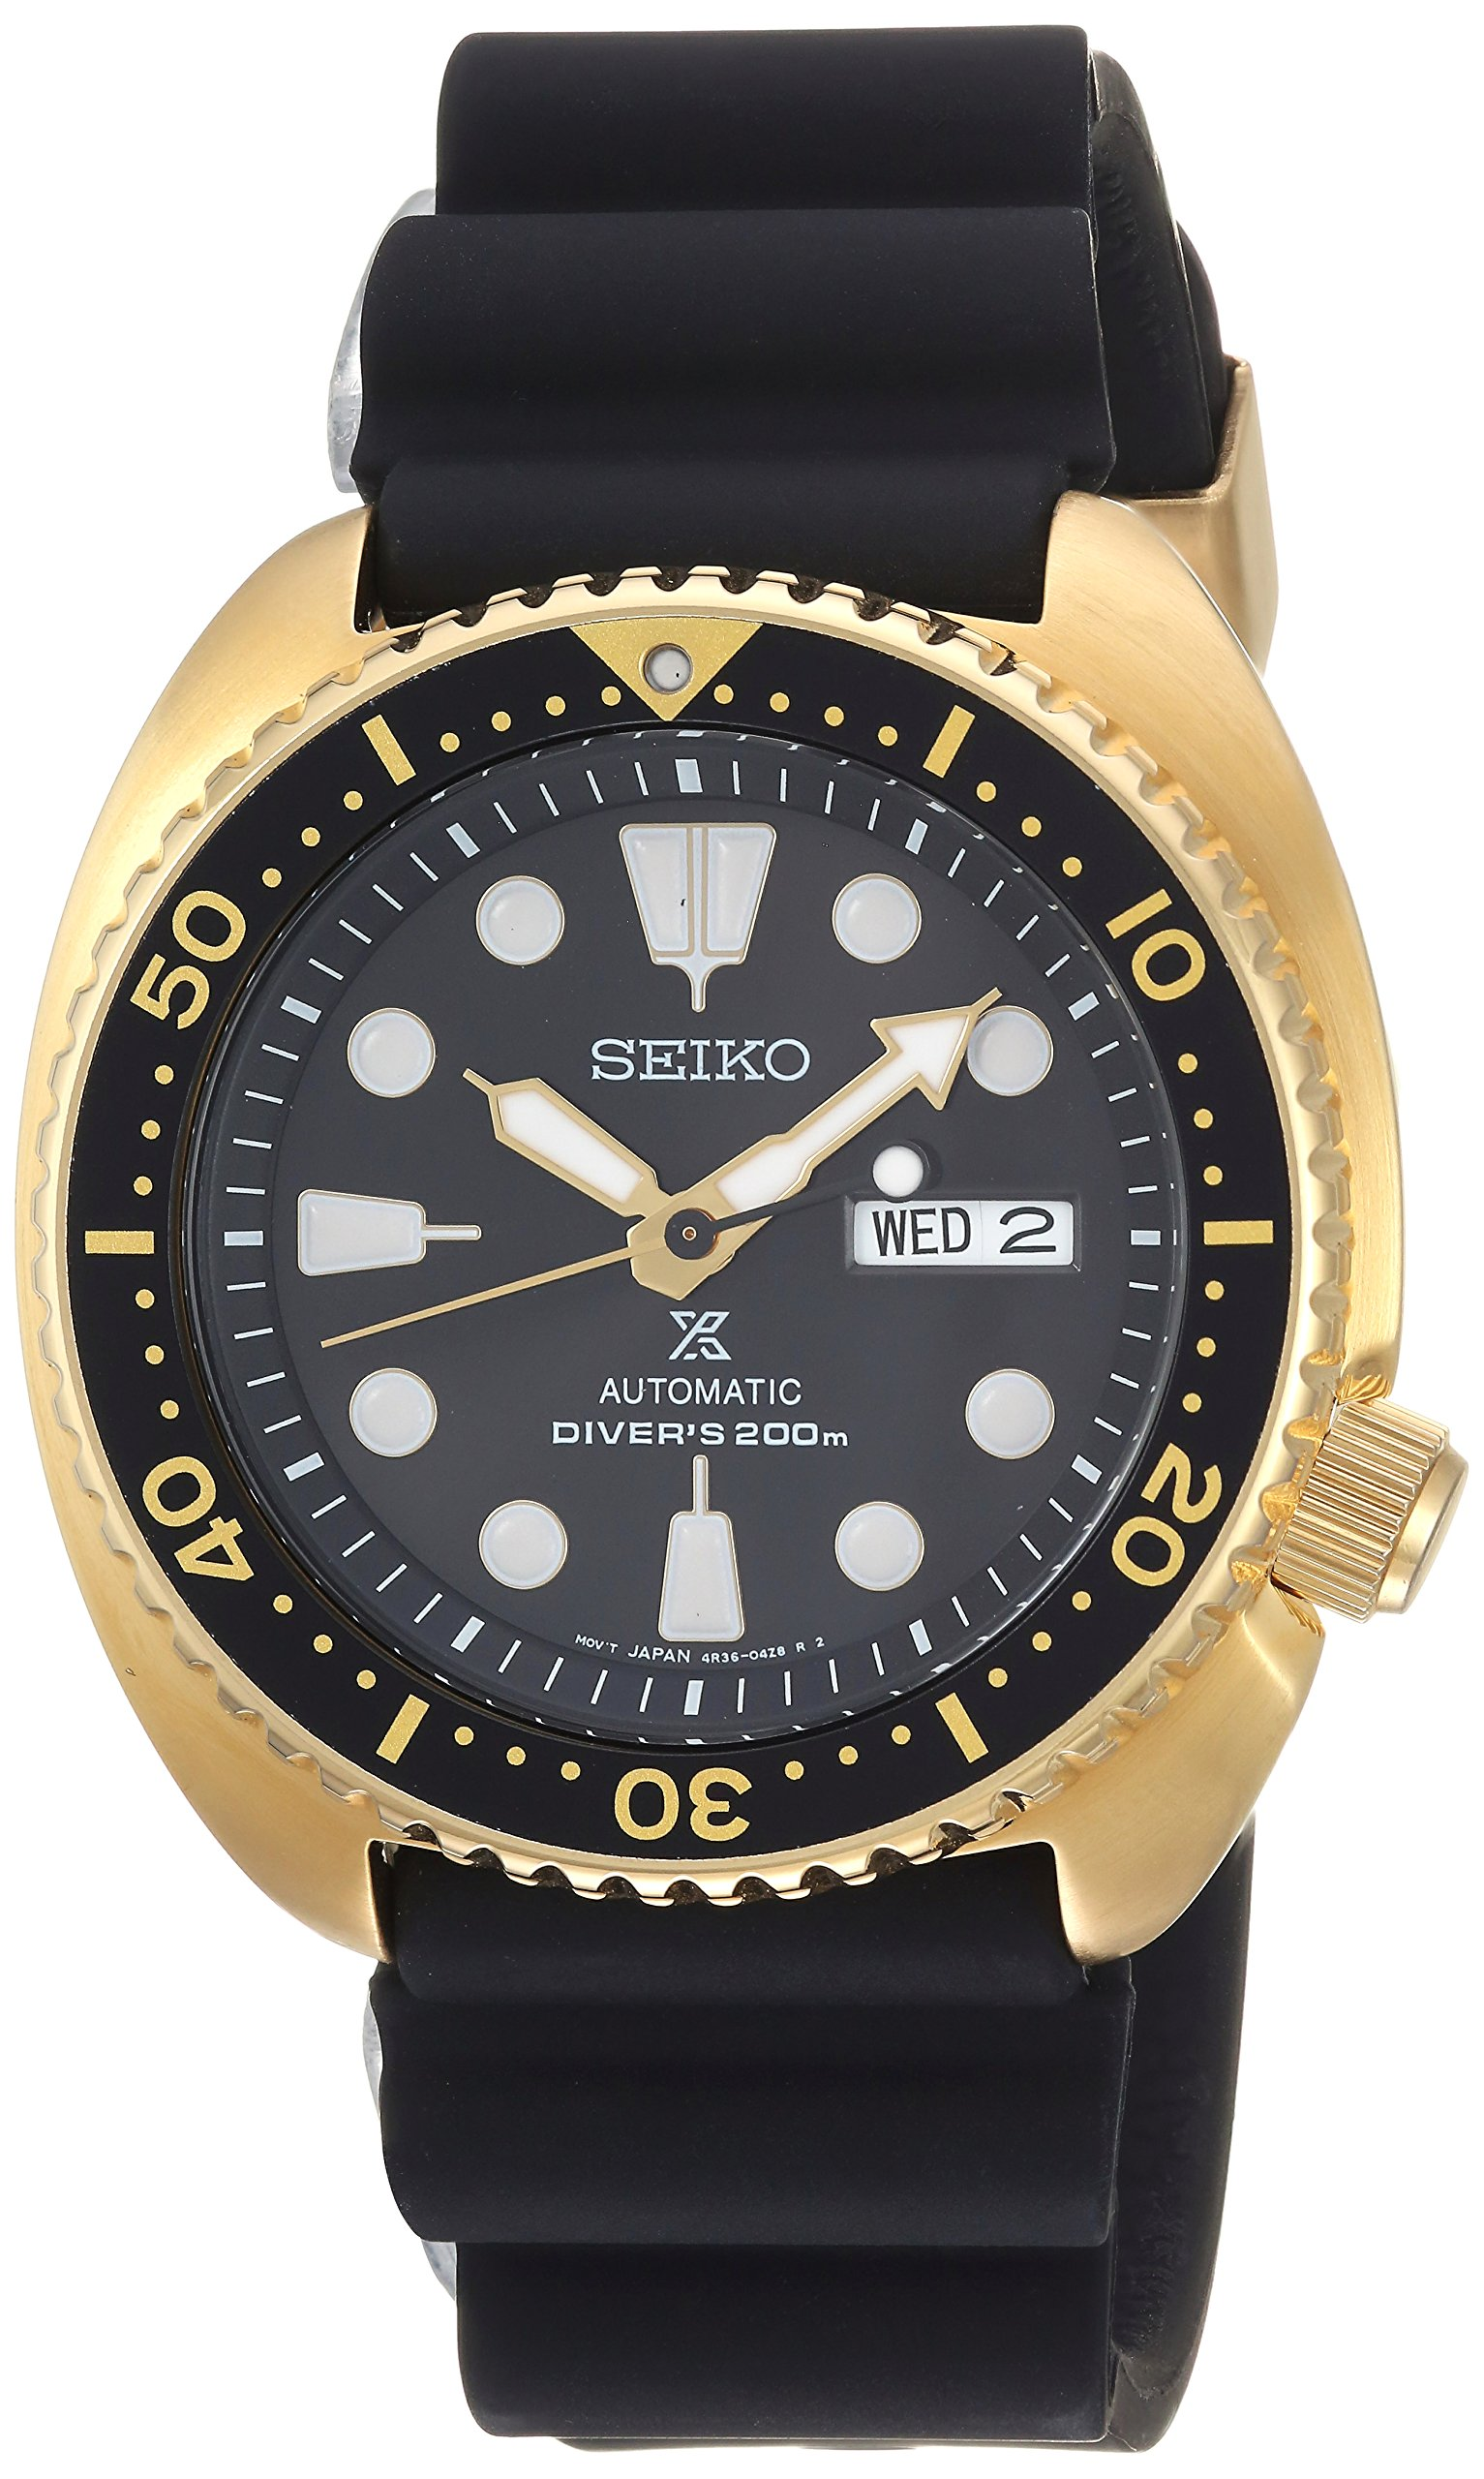 Seiko Men's Prospex Stainless Steel Automatic-self-Wind Watch with Silicone Strap, Black, 21 (Model: SRPC44) by SEIKO